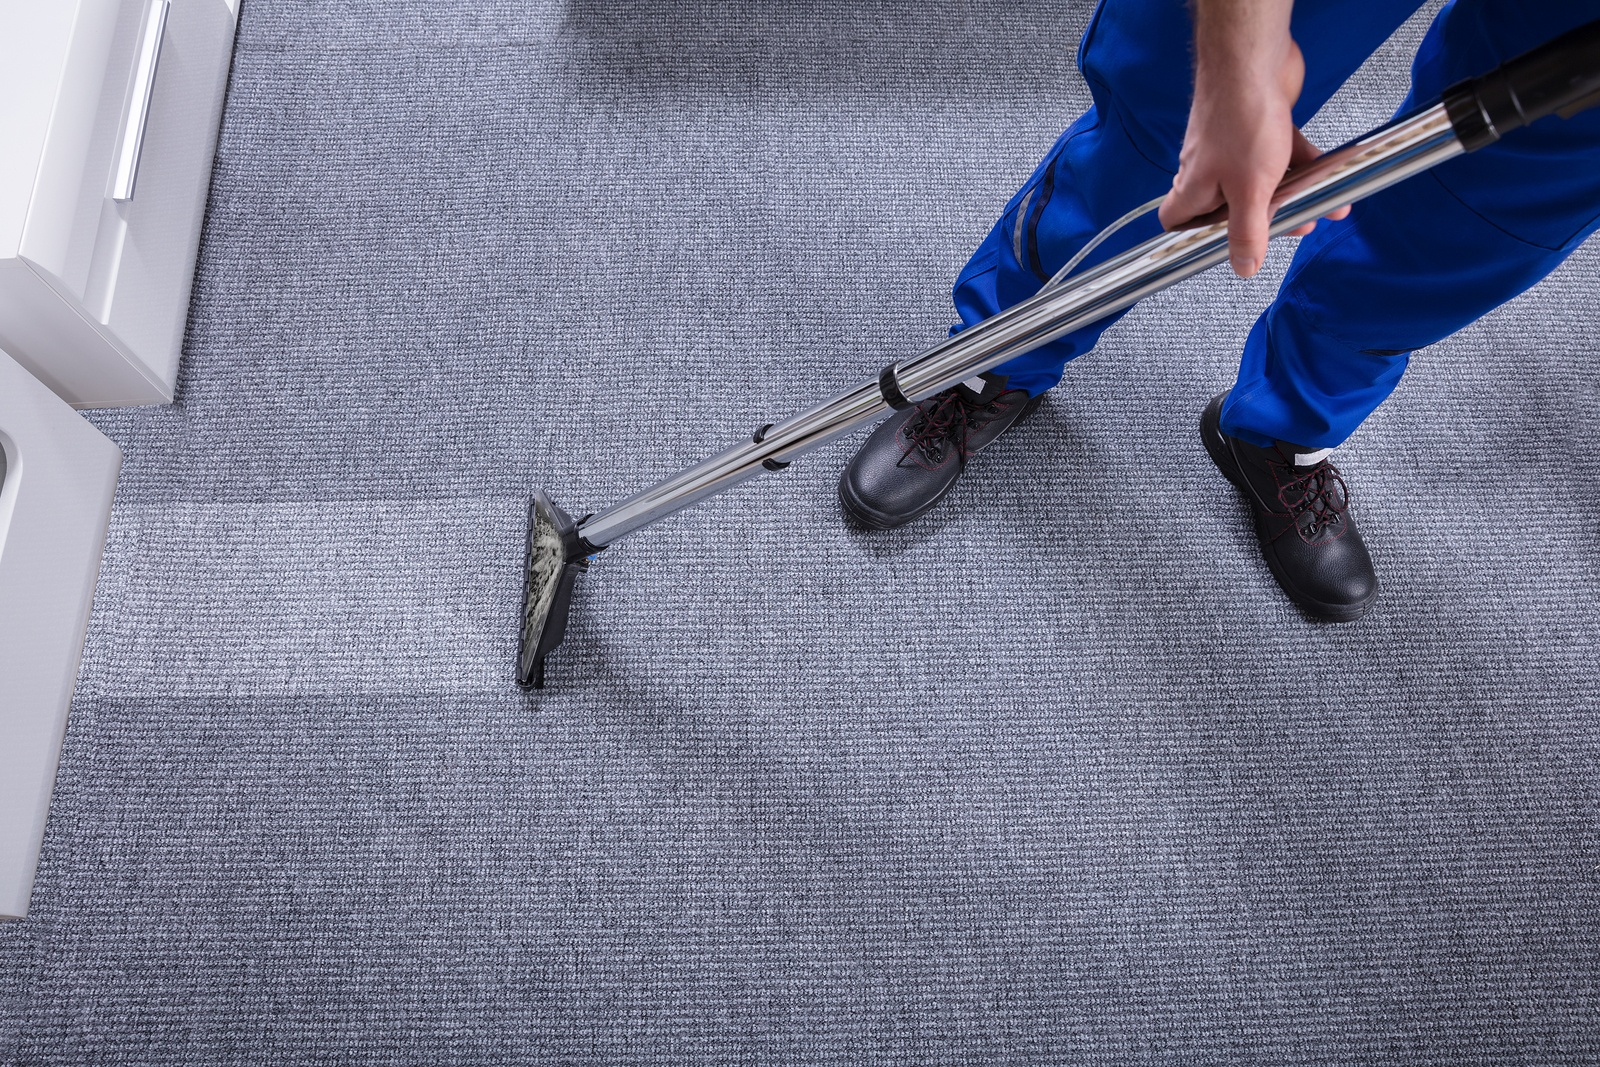 Choosing a Professional Carpet Cleaning Company